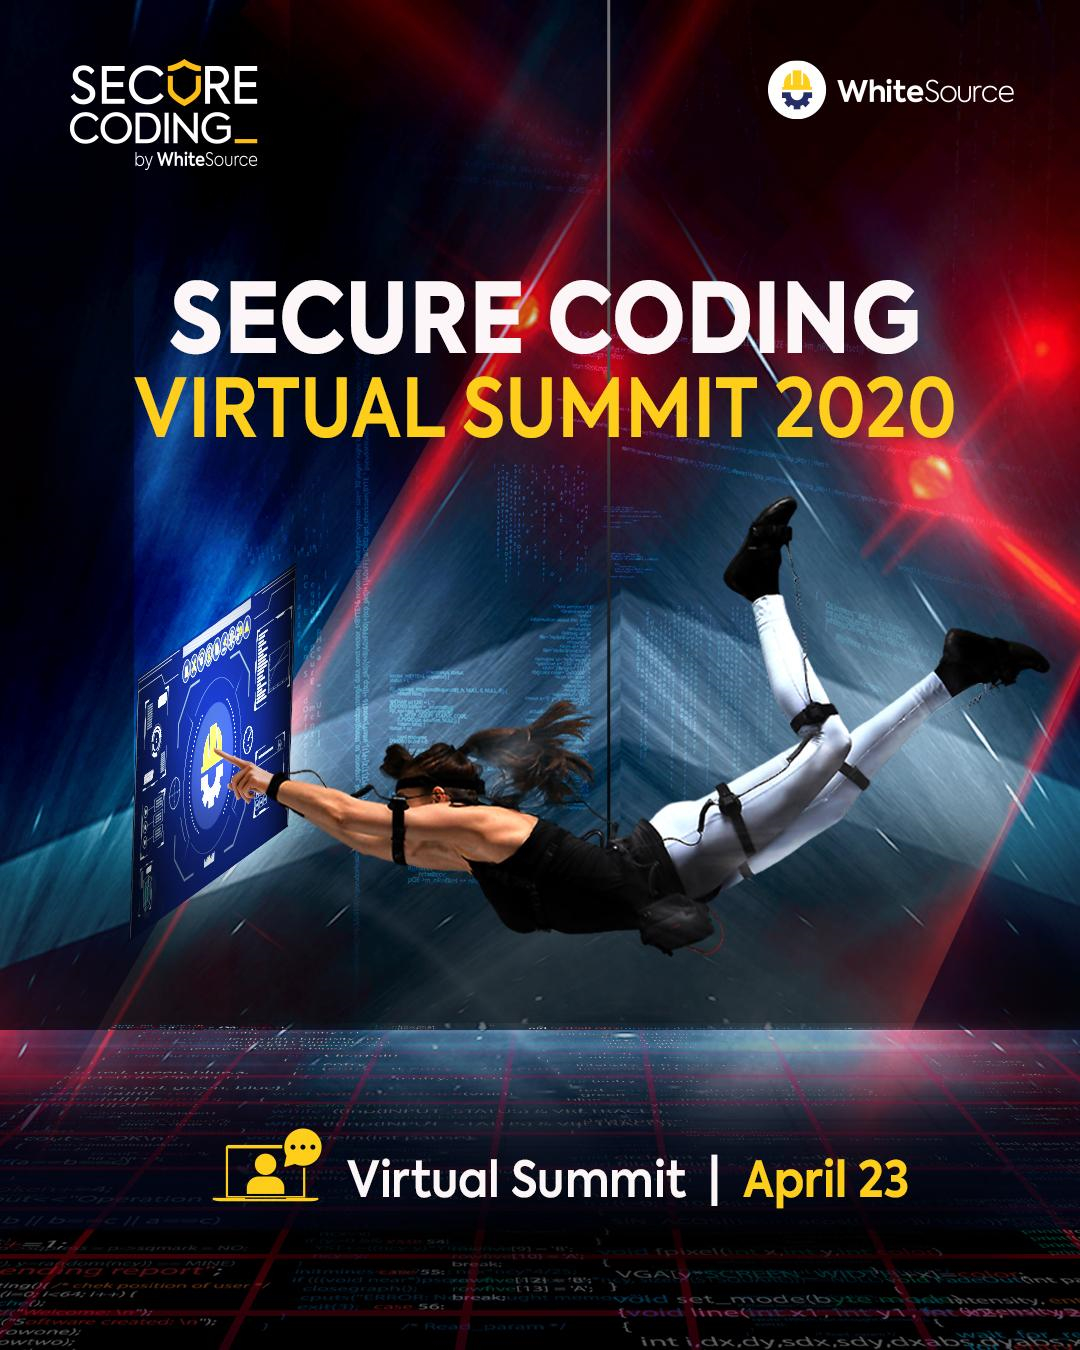 I Will Be Speaking At The WhiteSource Secure Coding Virtual Summit